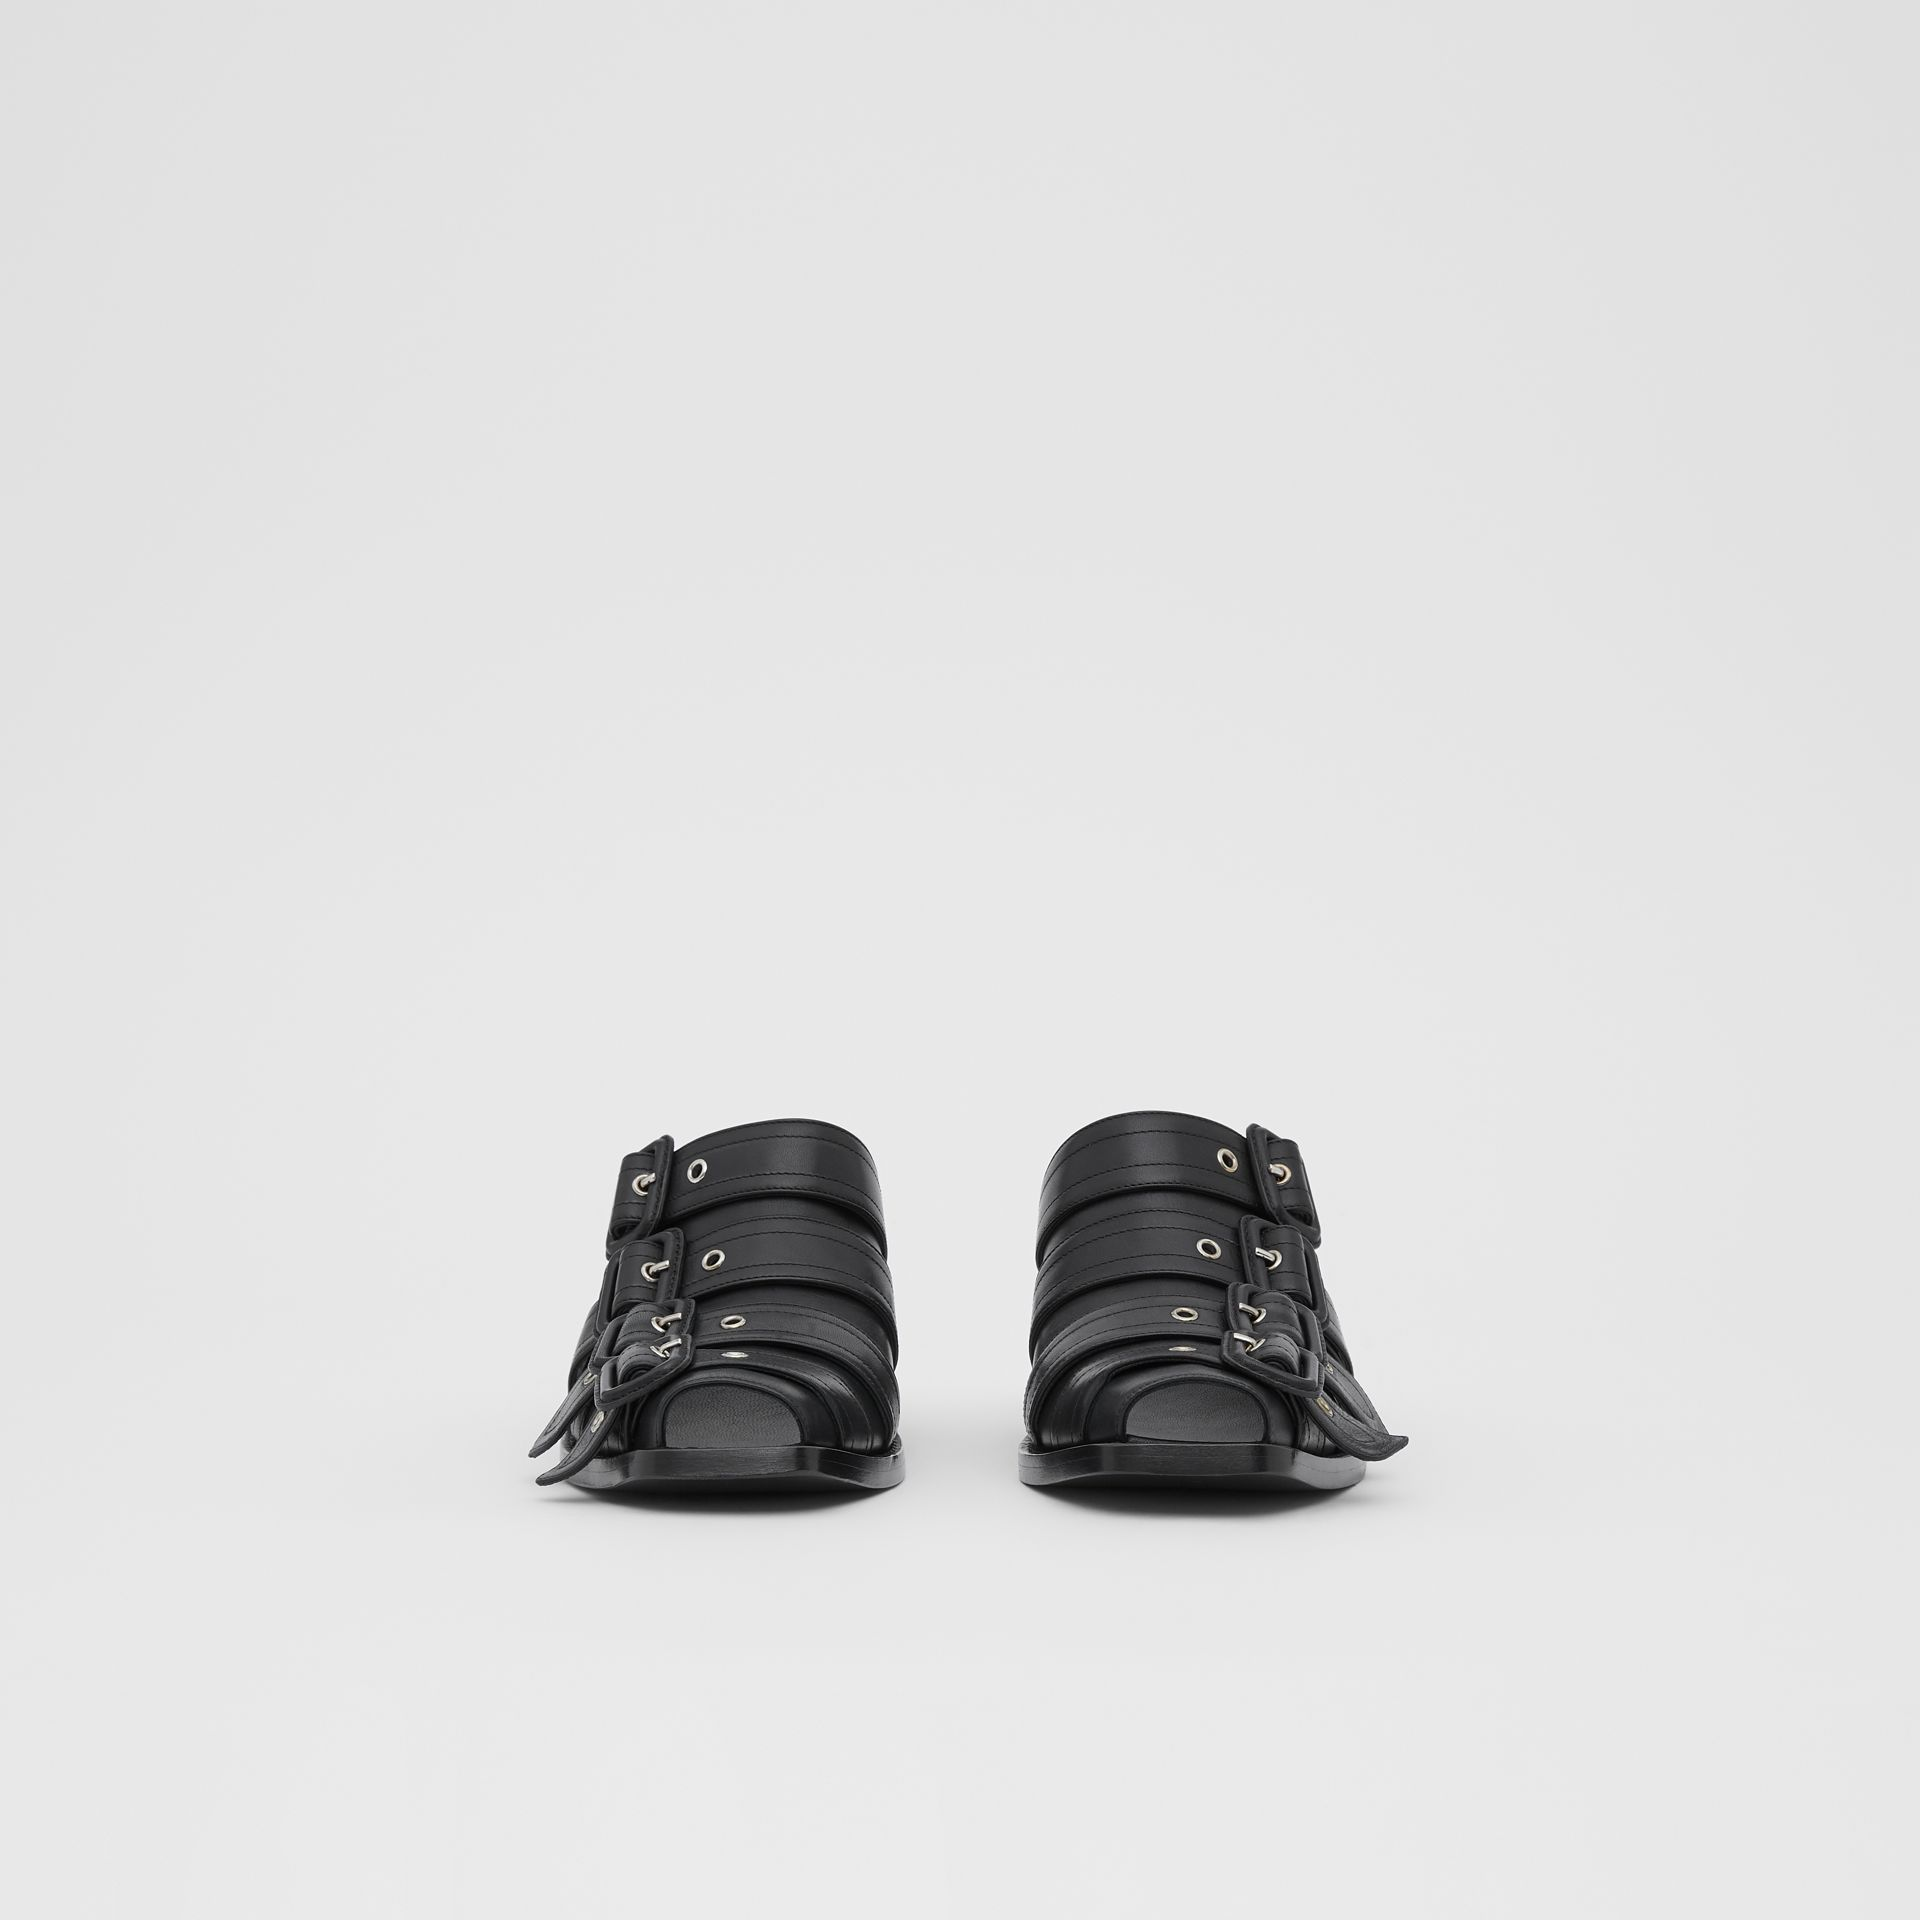 Buckled Leather Peep-toe Mules in Black - Women | Burberry - gallery image 3